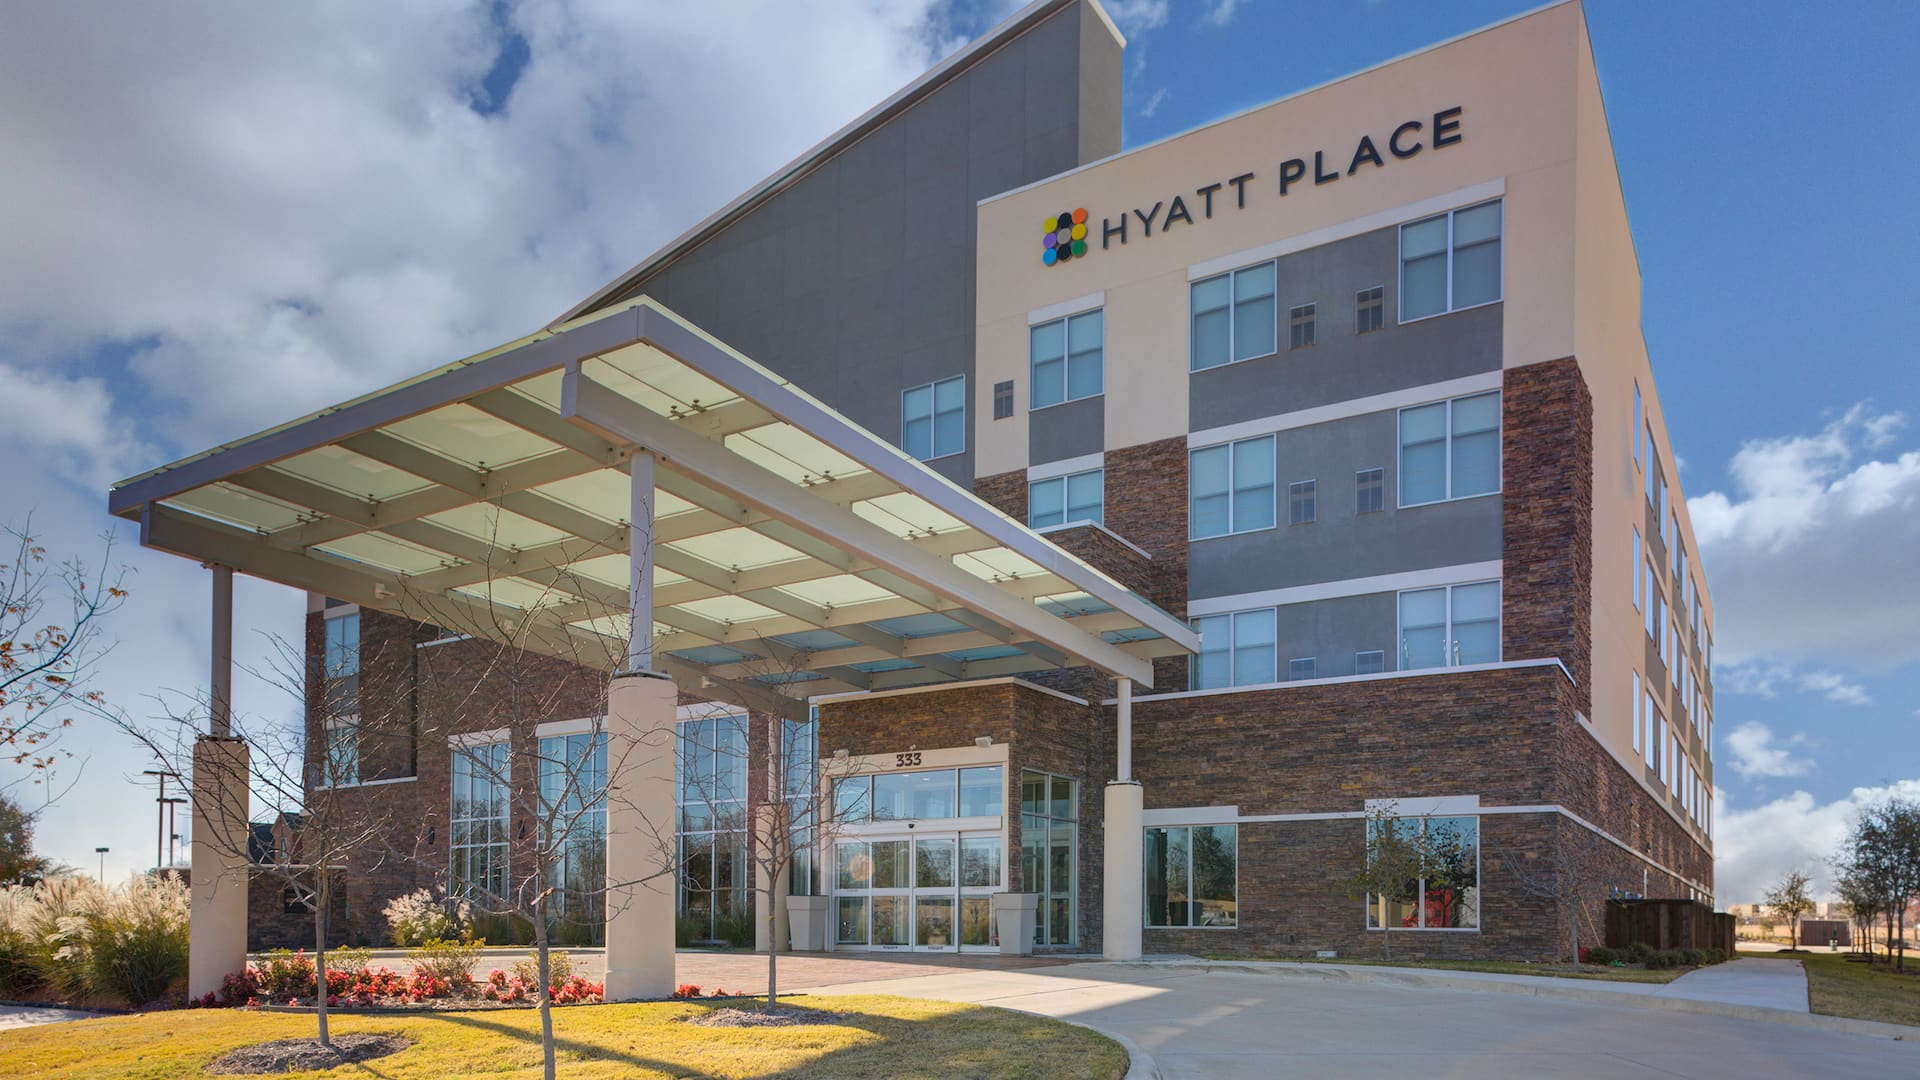 Hyatt place Dallas Allen Exterior